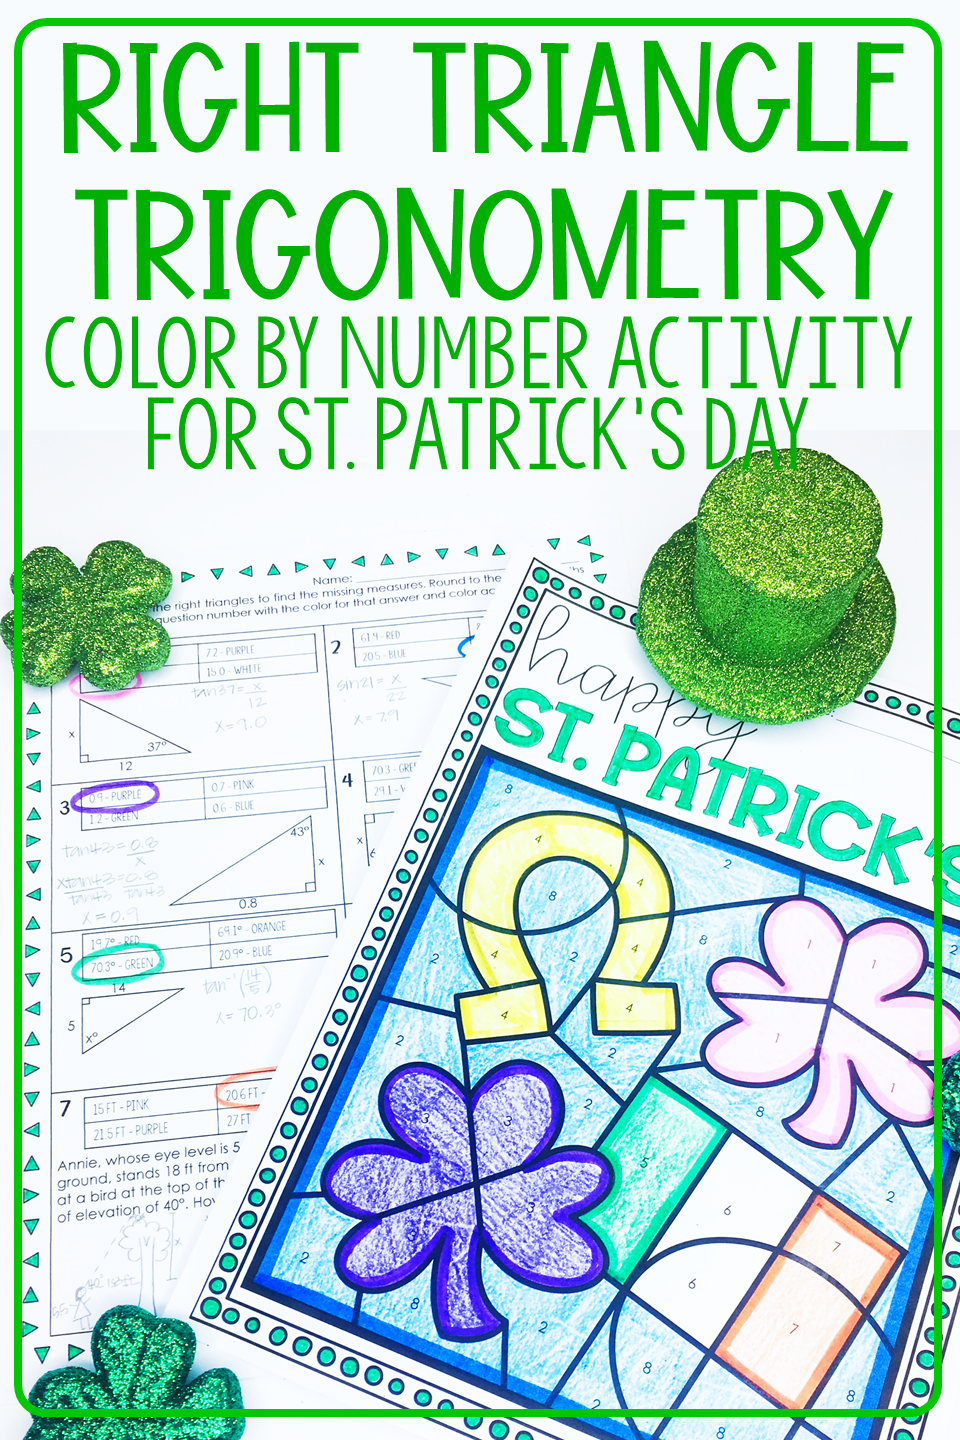 hight resolution of ST. PATRICK'S DAY Geometry   Right Triangle Trig Coloring Activity   Trigonometry  worksheets